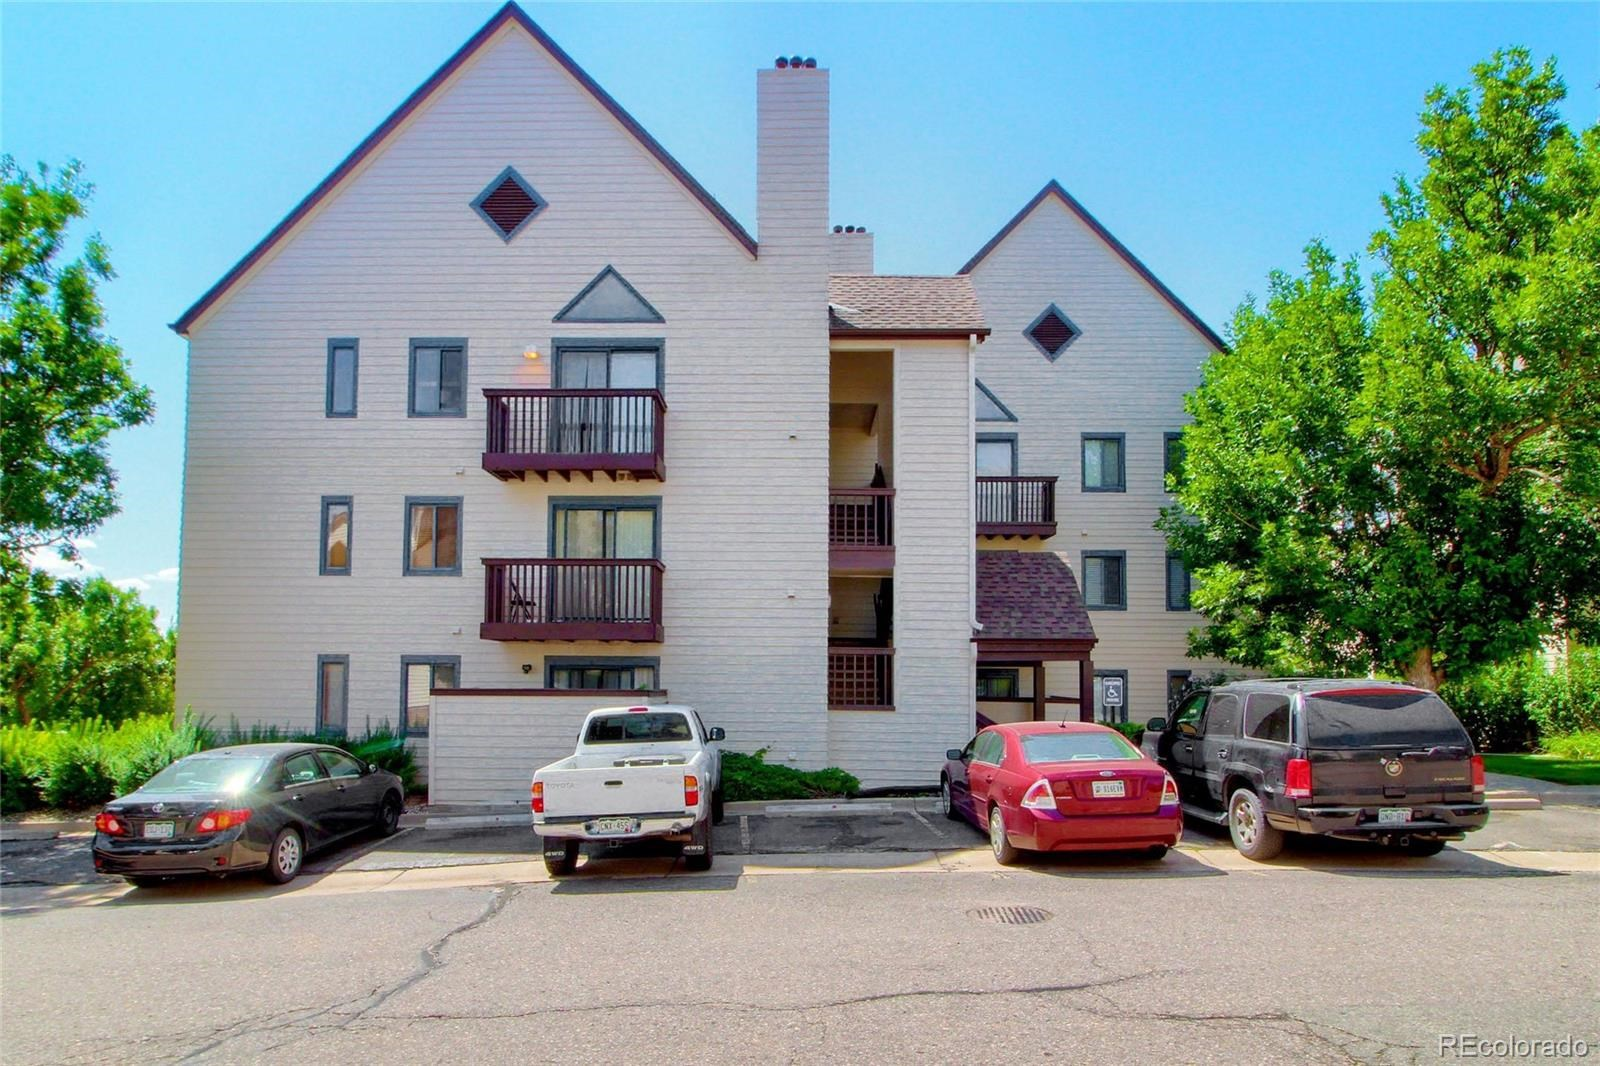 MLS# 5763768 - 6 - 6380 S Boston Street #303, Greenwood Village, CO 80111